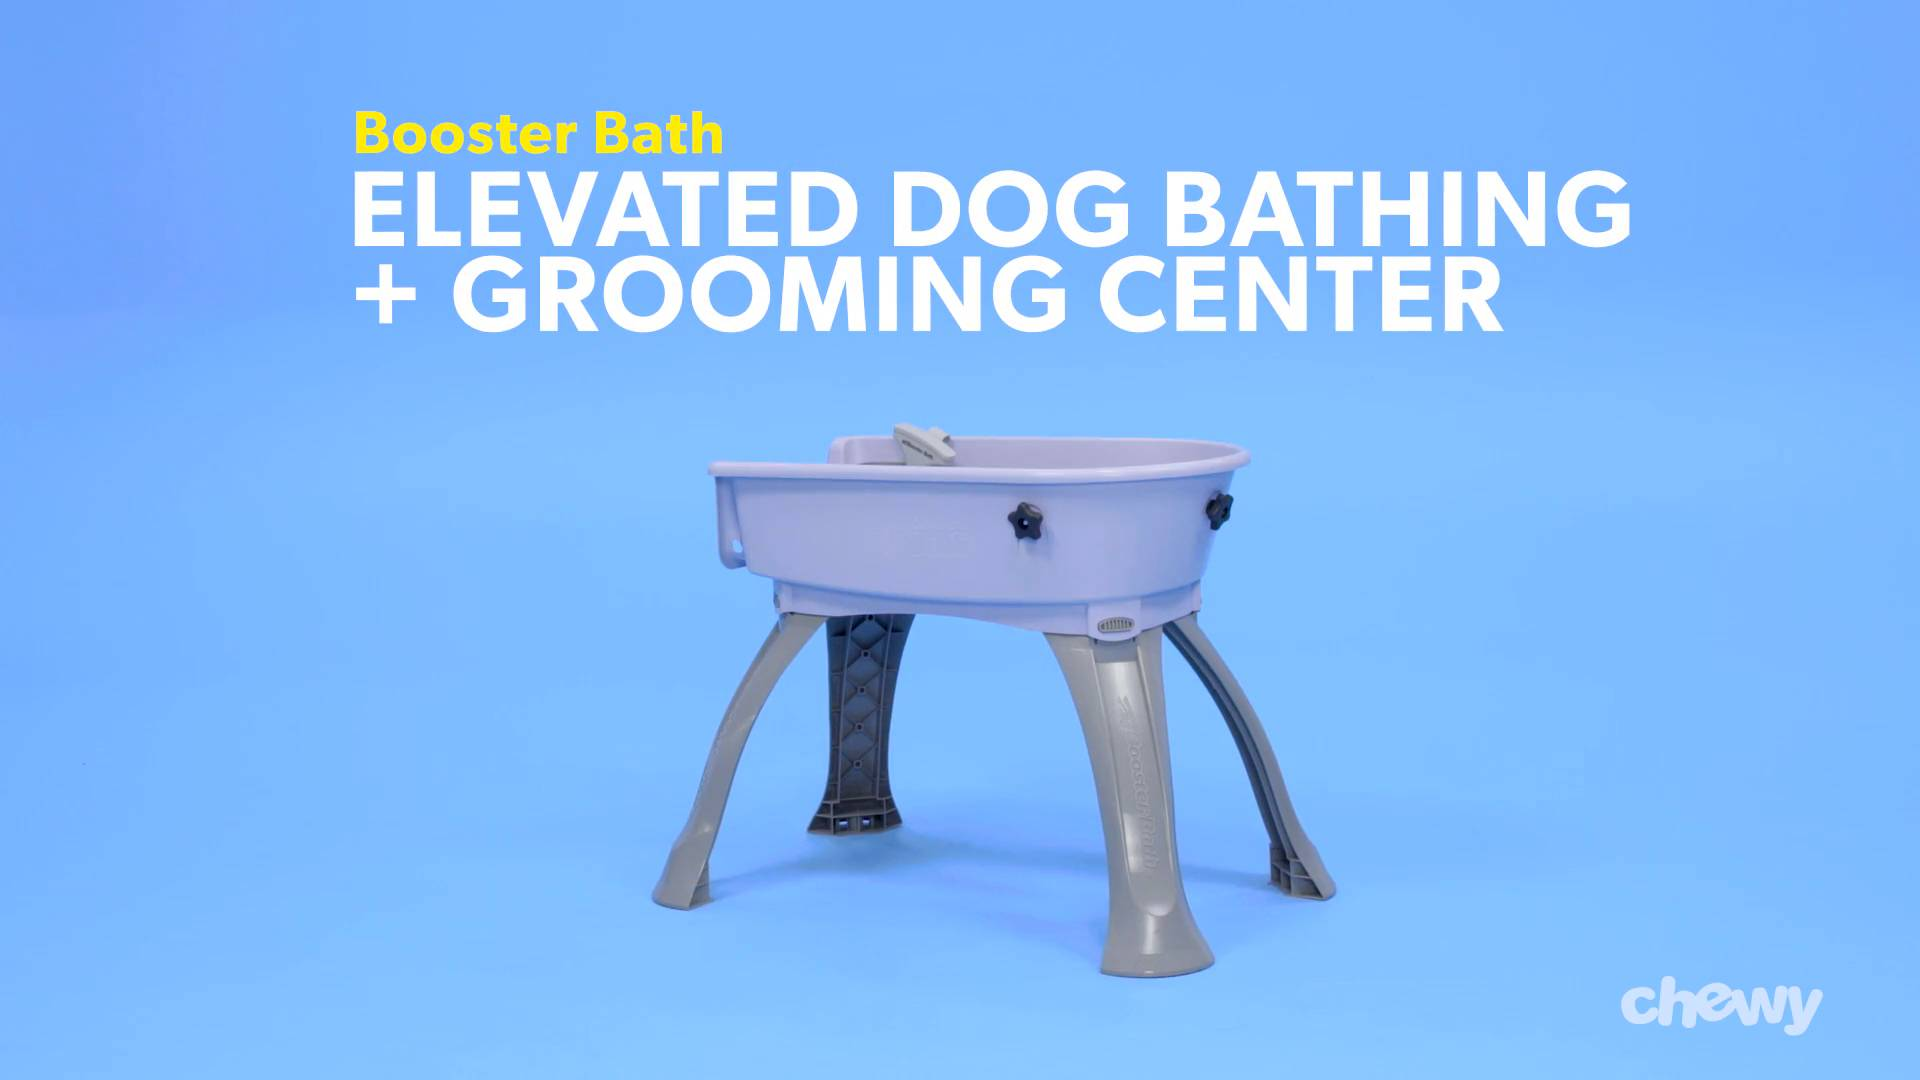 Booster Bath Elevated Dog Bathing and Grooming Center, Large, Teal ...